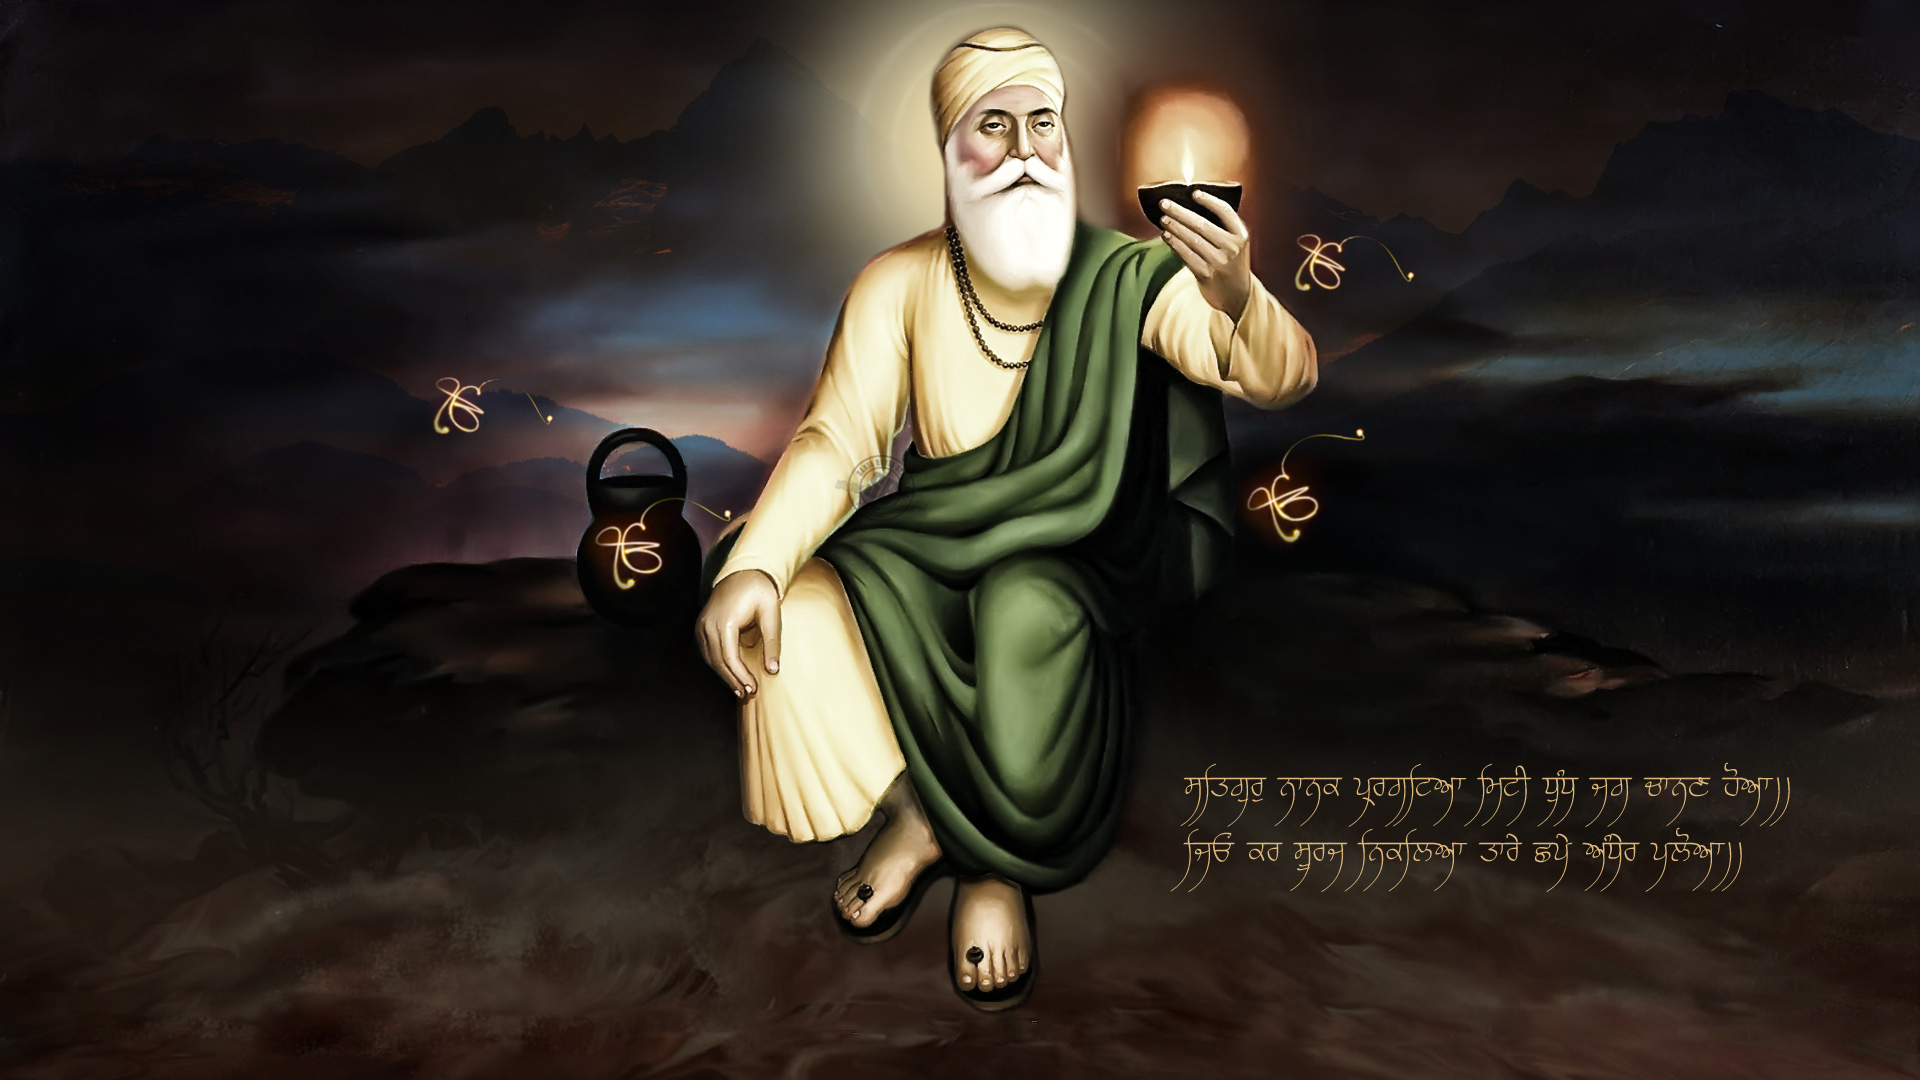 Guru Nanak Ji Images Wallpaper Free Download